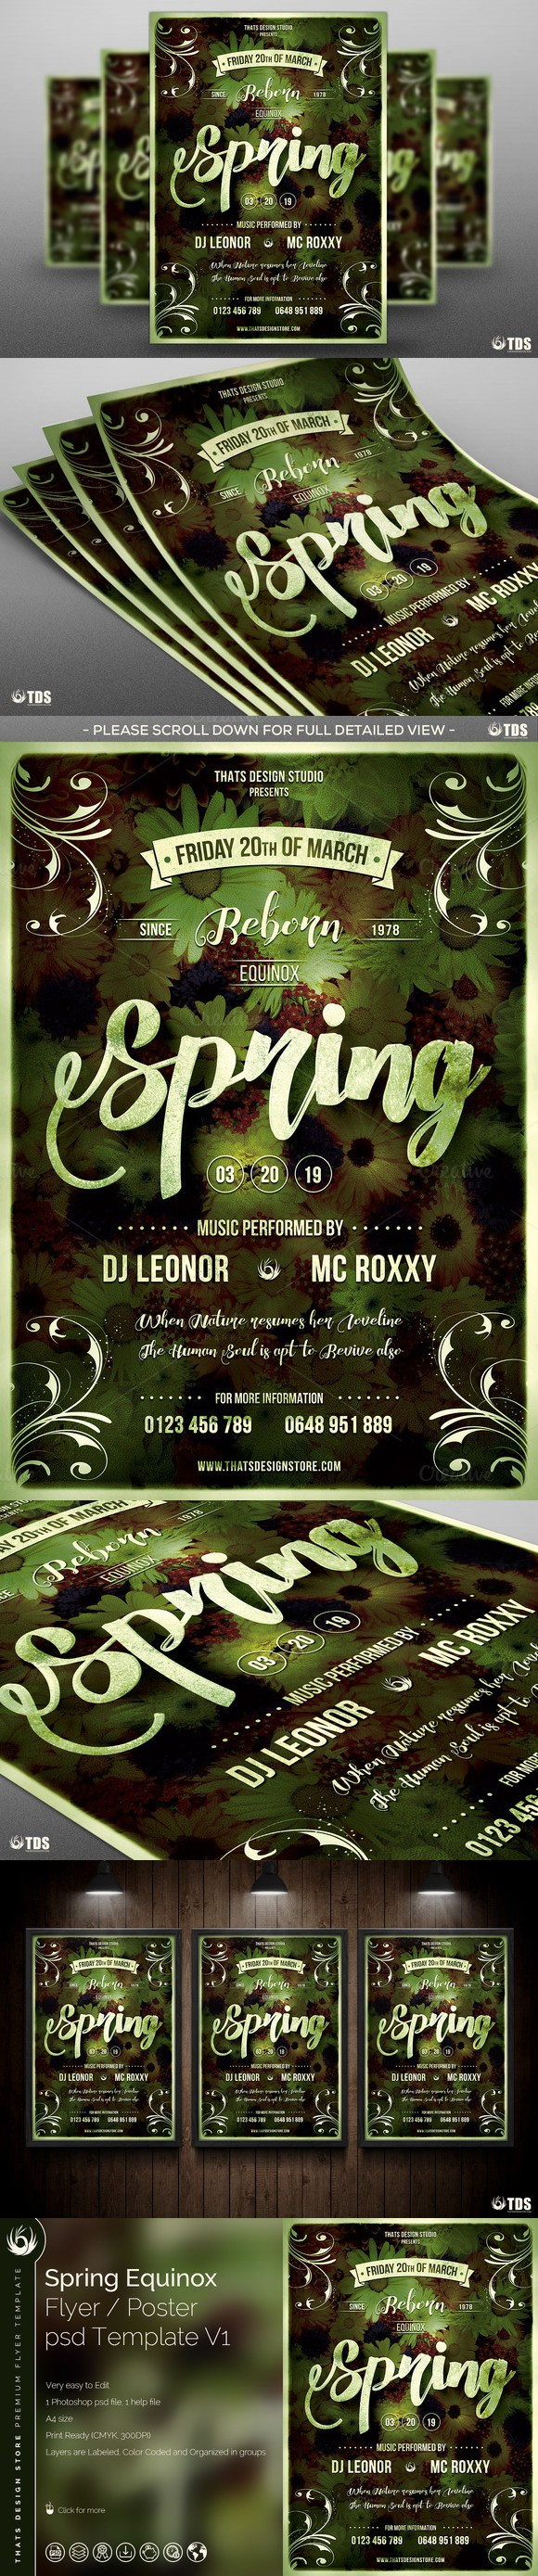 Spring Equinox Flyer Template V  Flyer Template Equinox And